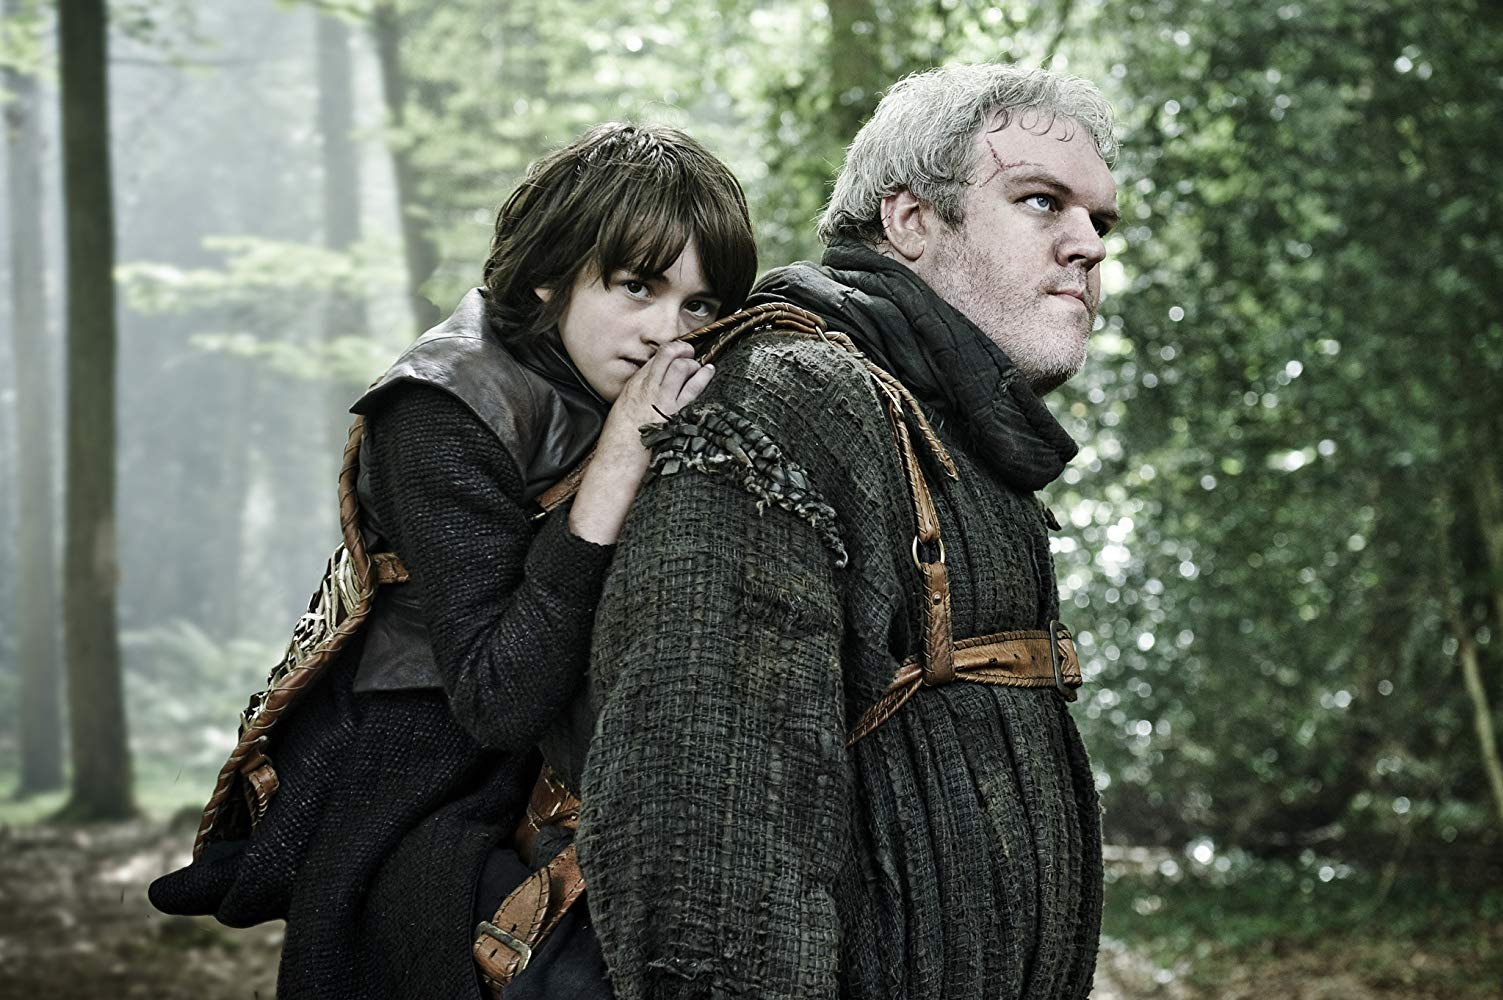 Bran Stark being carried by Hodor. (Source: IMDB)